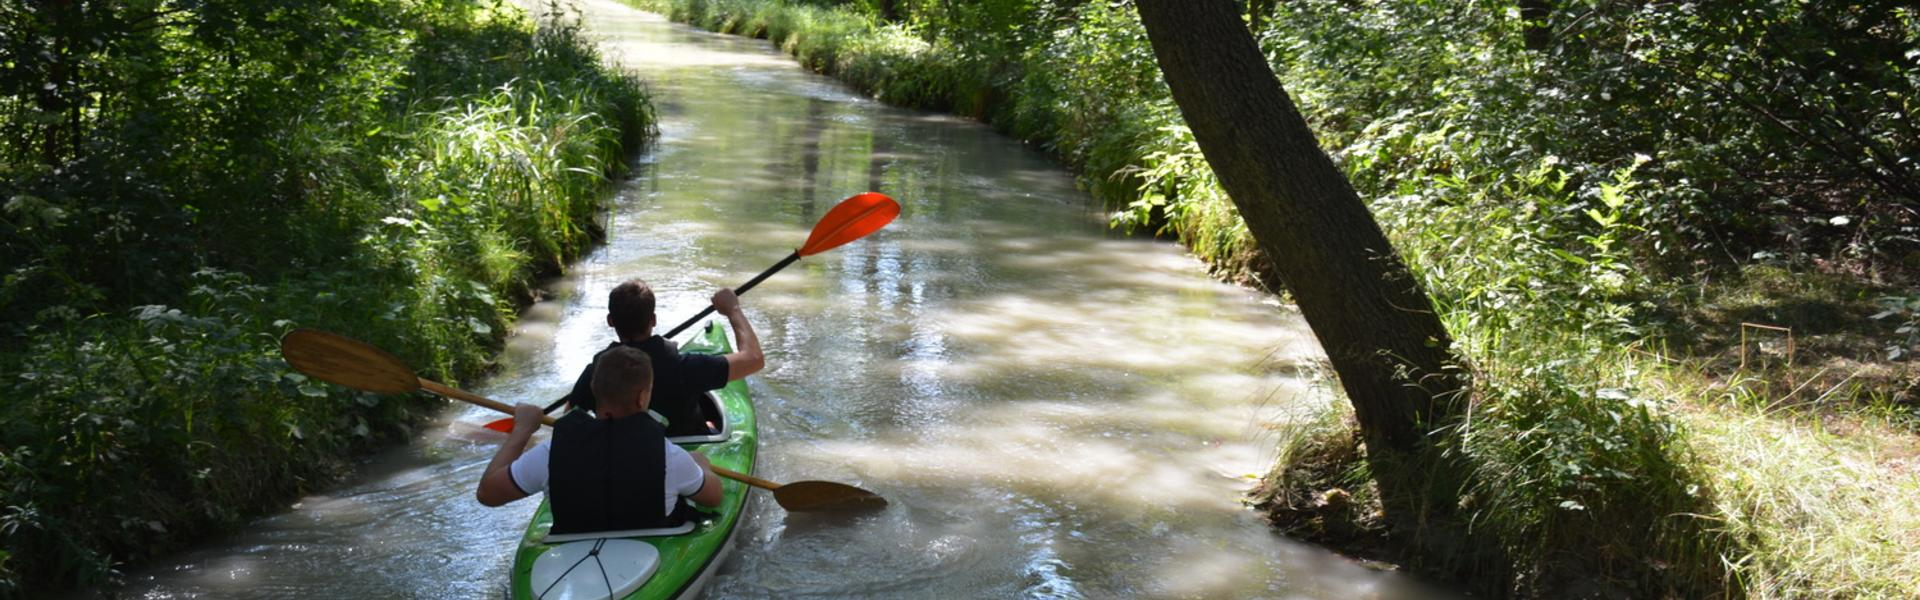 Image: Kayaking down the Sztoła River in Bukowno